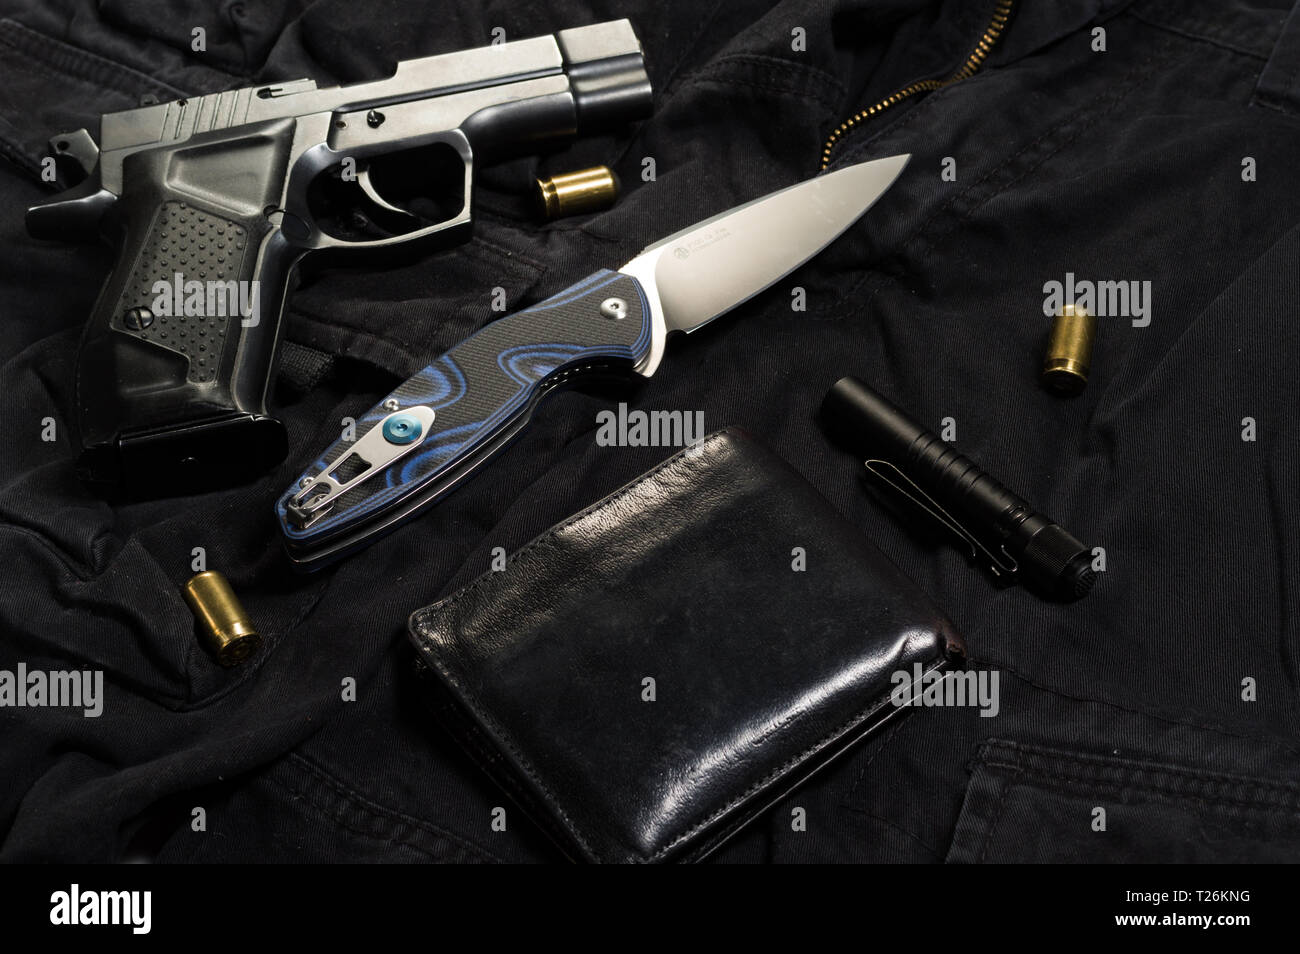 Traumatic pistol and cartridges. Weapons for self-defense. Top. - Stock Image